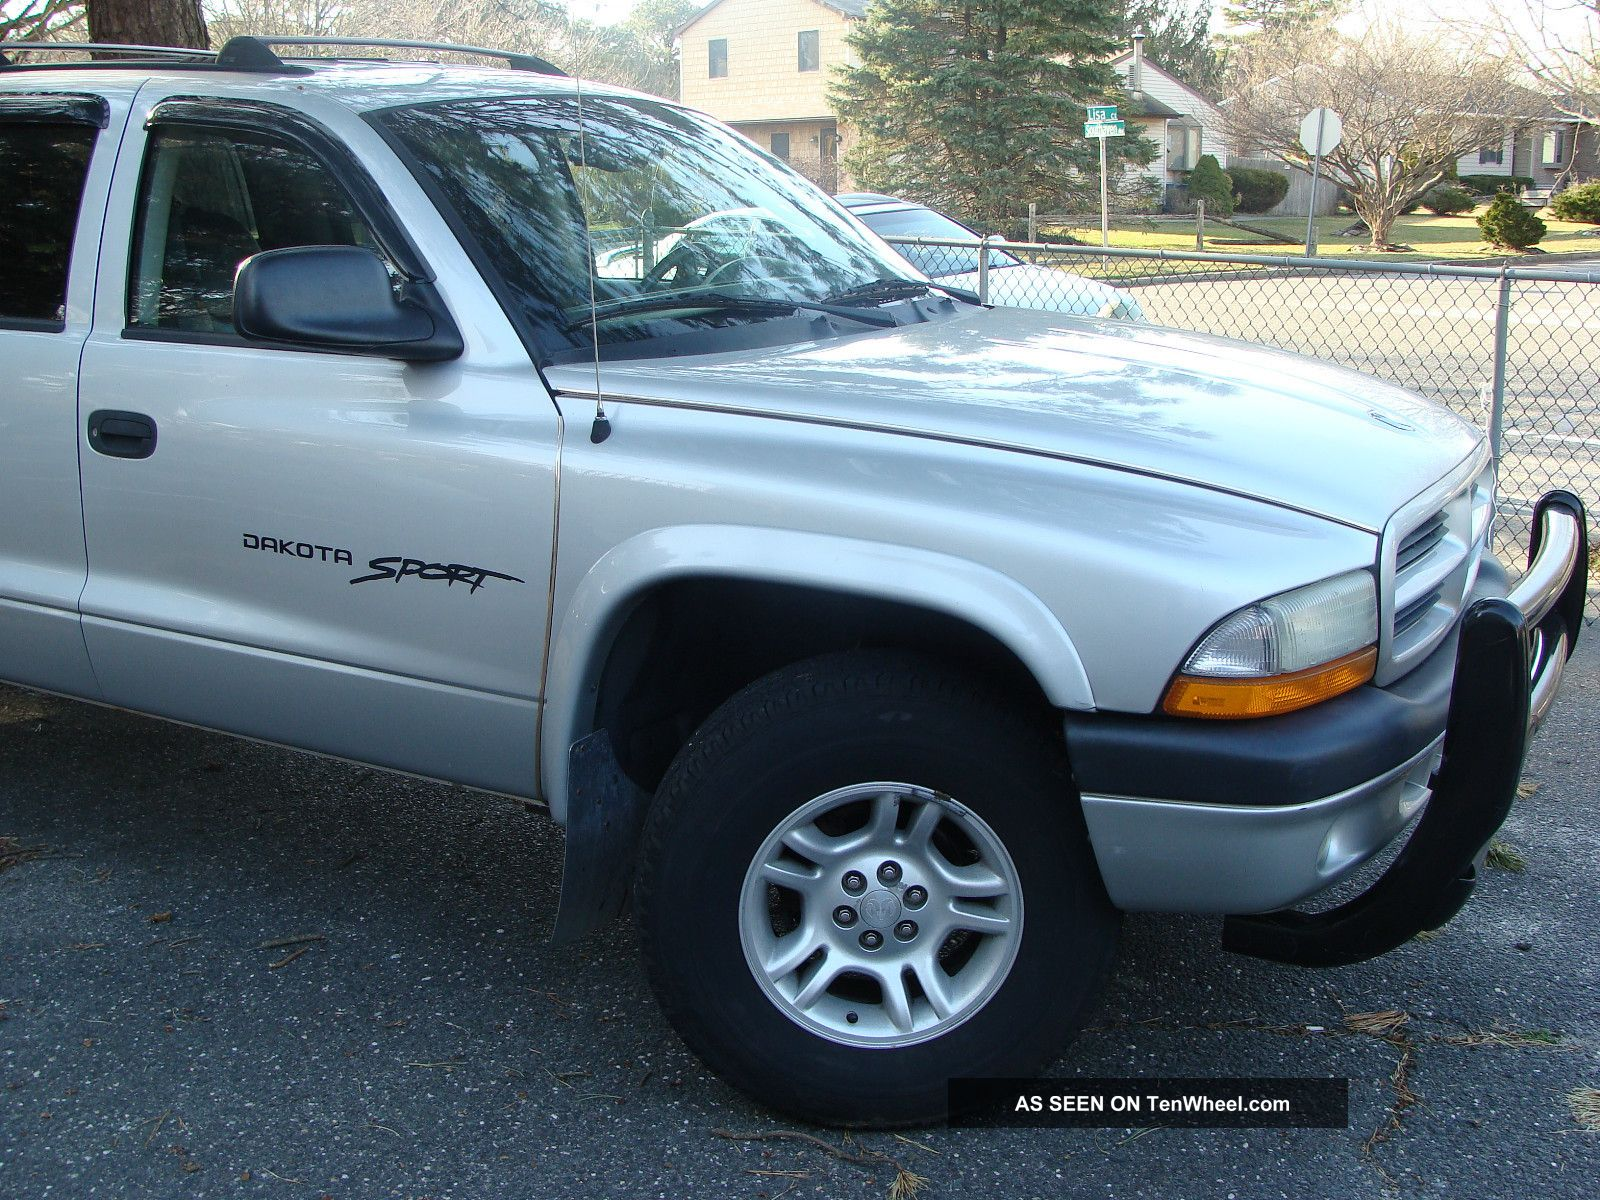 2001 dodge dakota sport pickup truck crew cab 5 9 liter 8 cylinder awd. Black Bedroom Furniture Sets. Home Design Ideas